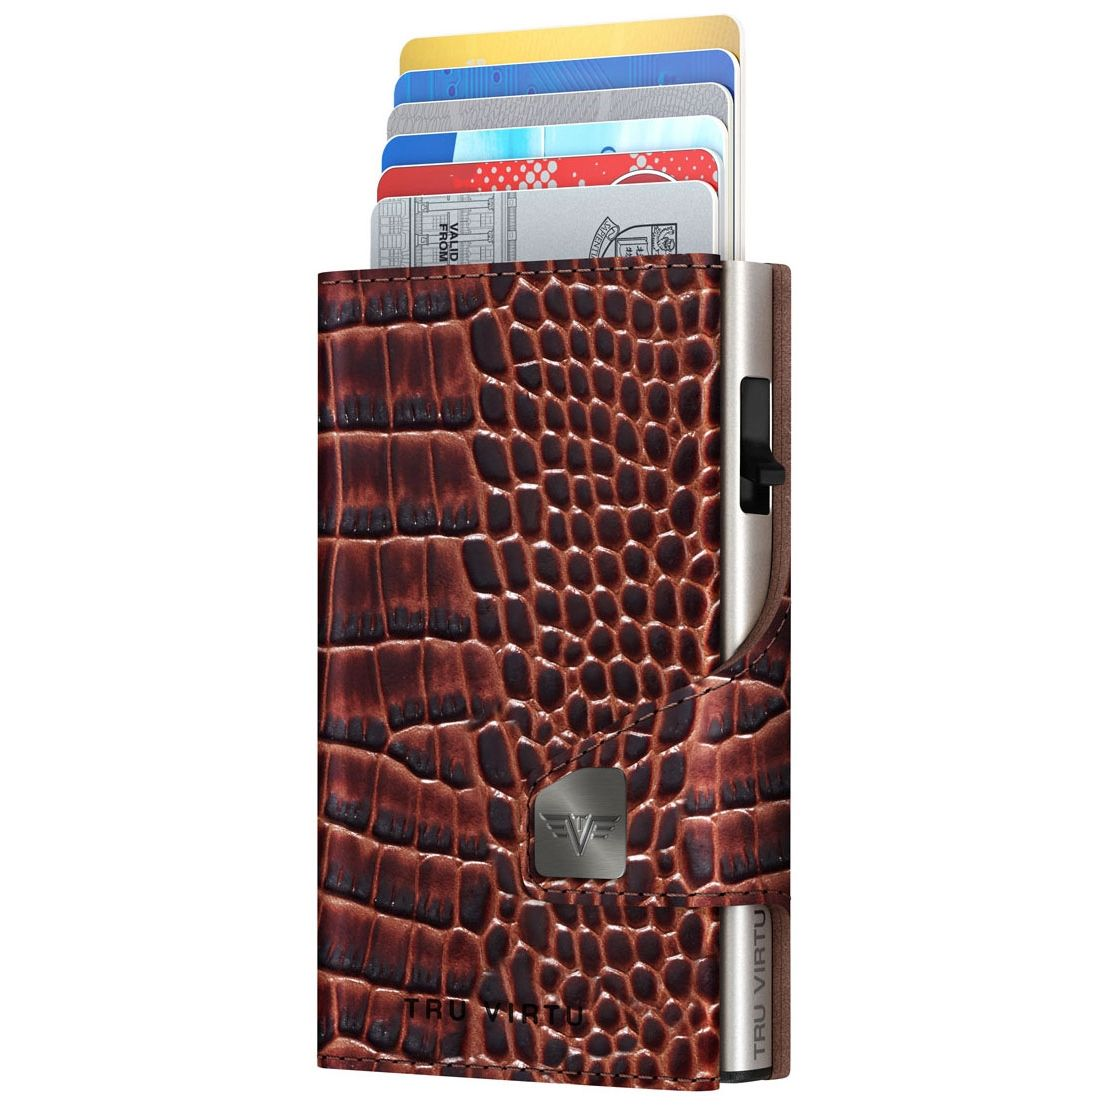 TRU VIRTU Click n Slide Wallet With Coin Pocket - Croco Brown